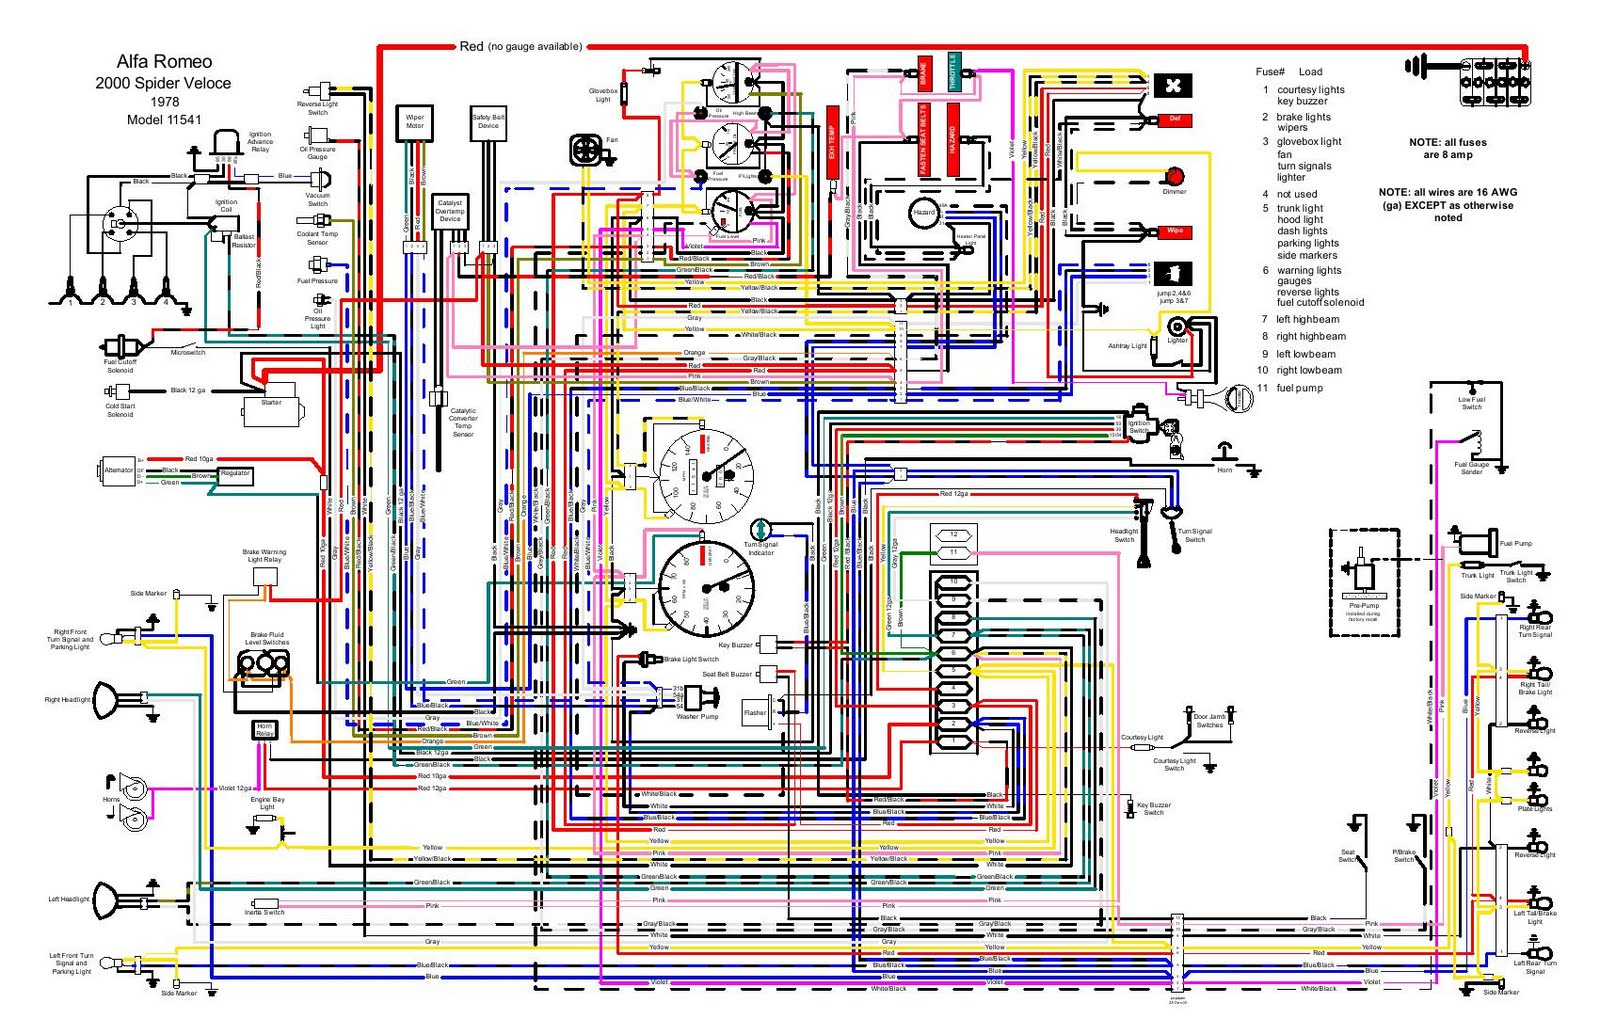 alfa romeo spider wiring diagram electrical wiring diagram house u2022 rh universalservices co alfa romeo spider 1974 wiring diagram 1982 alfa romeo spider wiring diagram